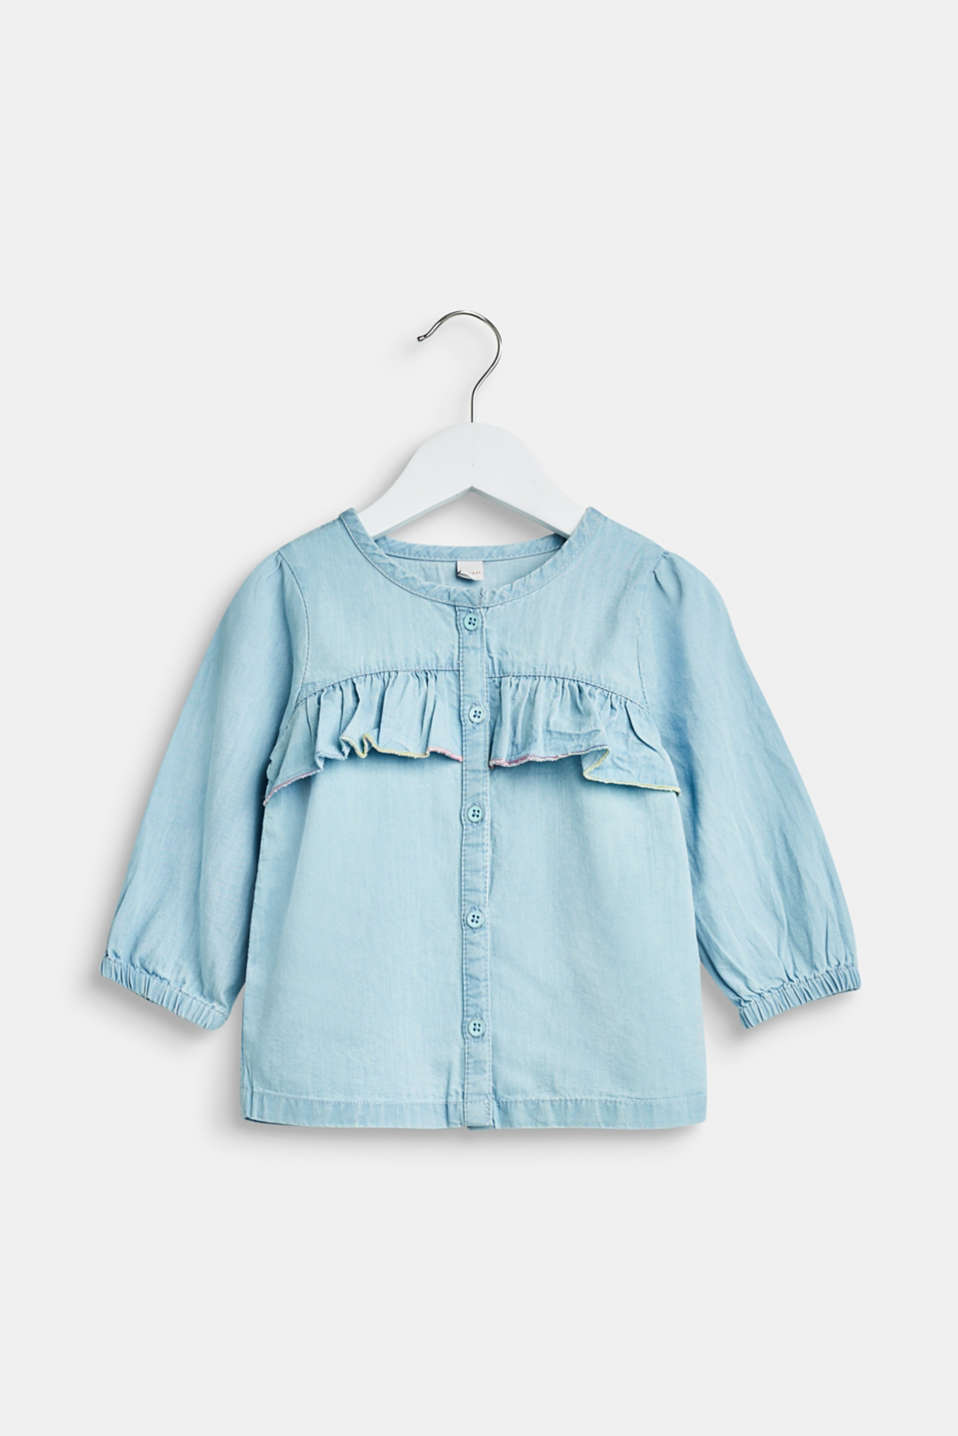 Esprit - Bleached denim blouse, 100% cotton